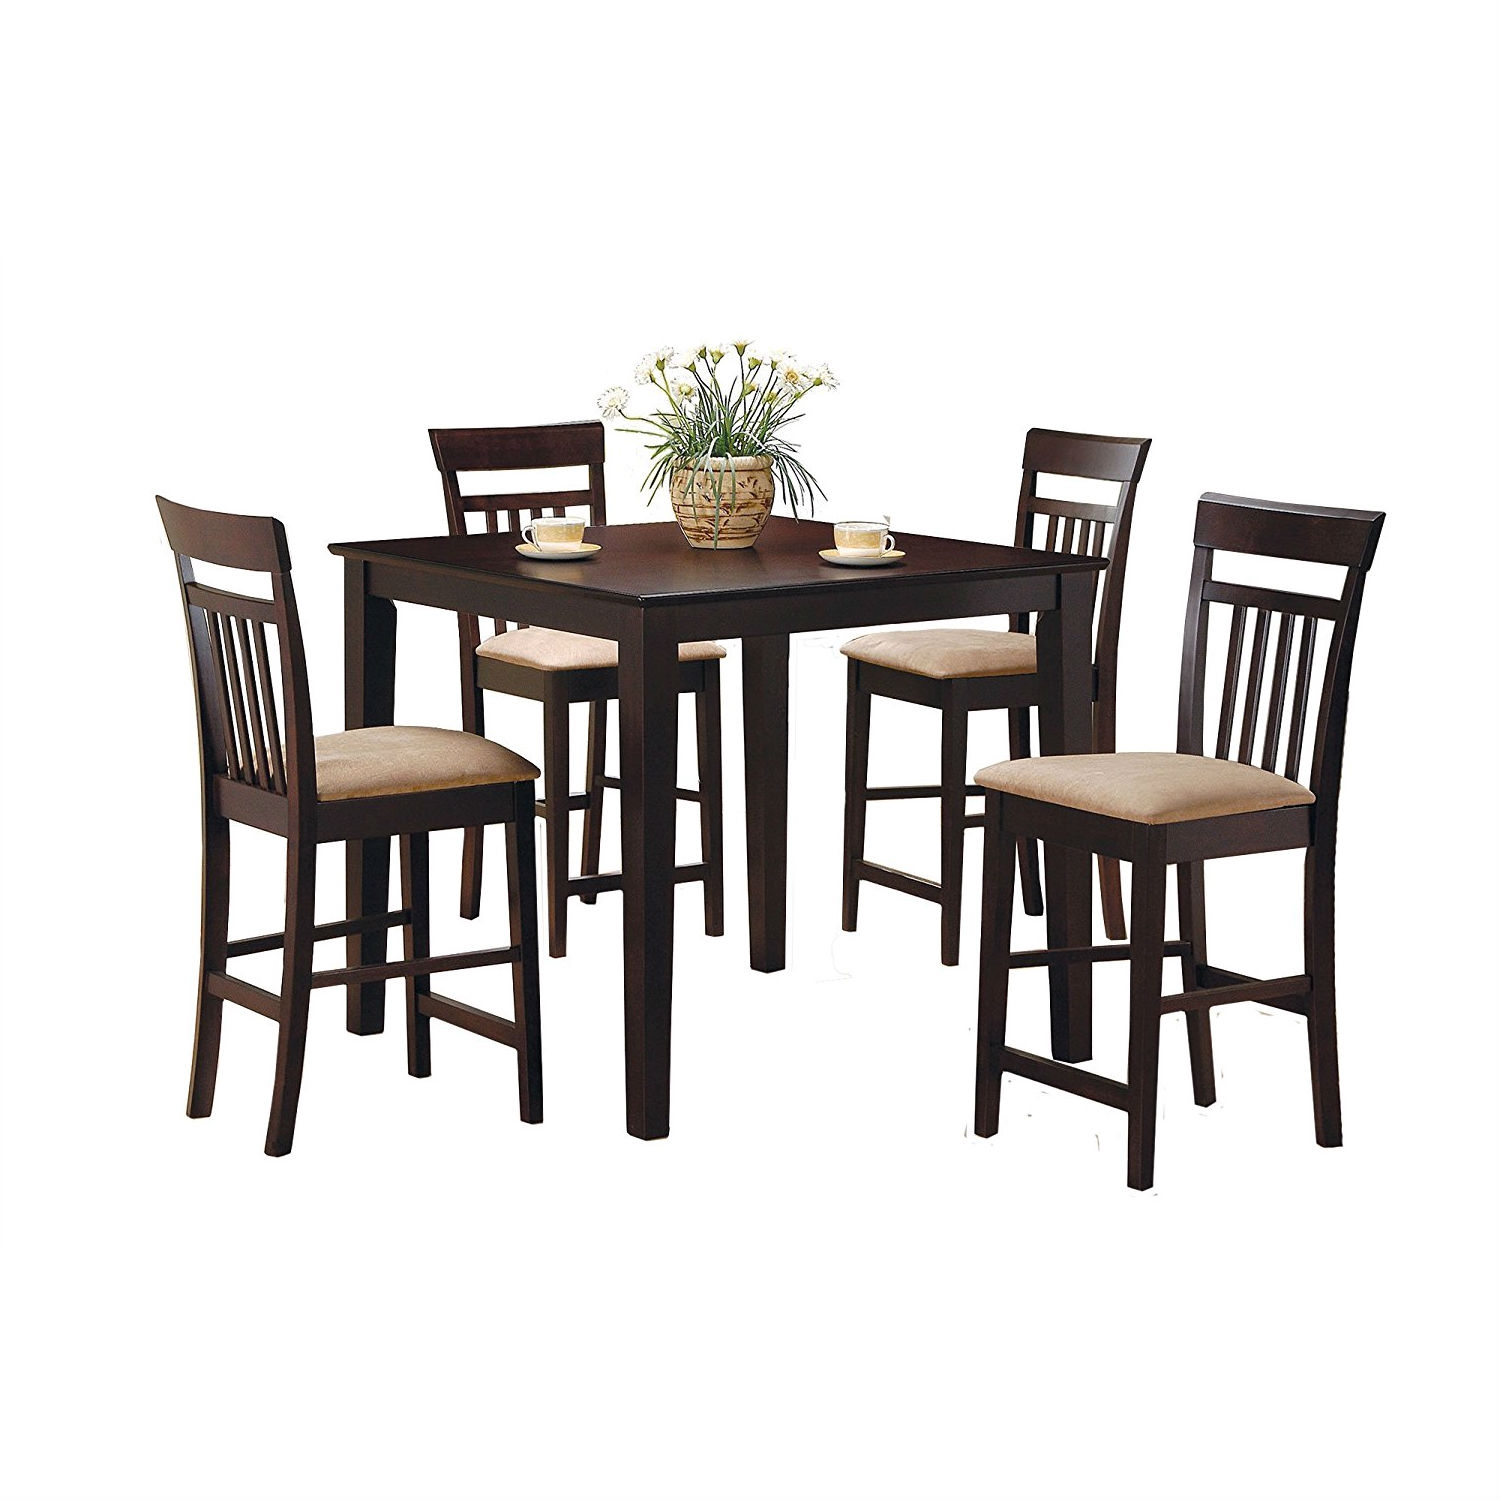 Incredible Dark Brown 5 Piece Dining Room Set With 4 Counter Height Barstools Home Interior And Landscaping Mentranervesignezvosmurscom